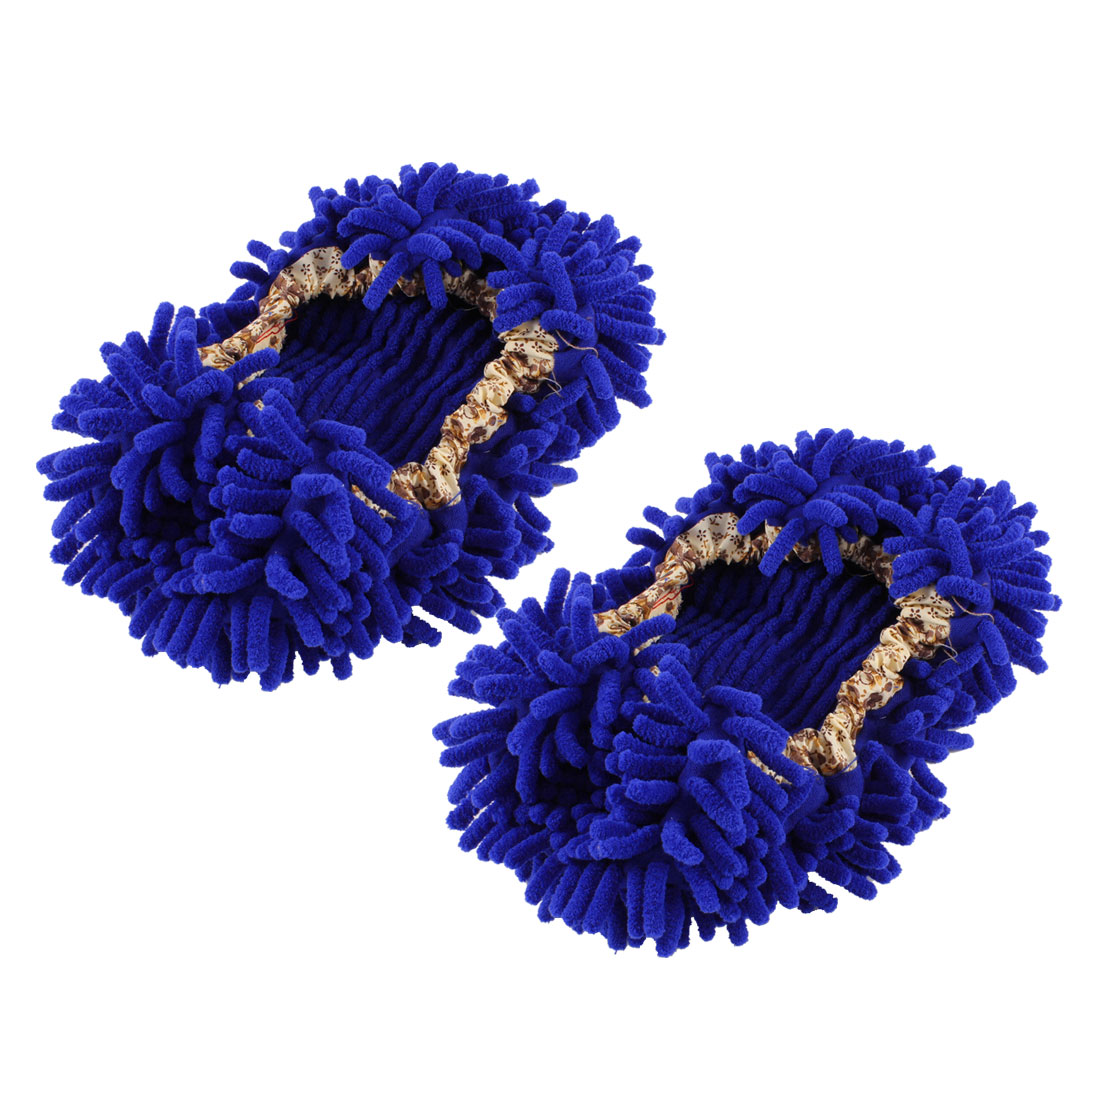 Home Floor Dust Cleaning Microfiber Stretchy Cuff Mop Slippers Shoes Royal Blue Pair